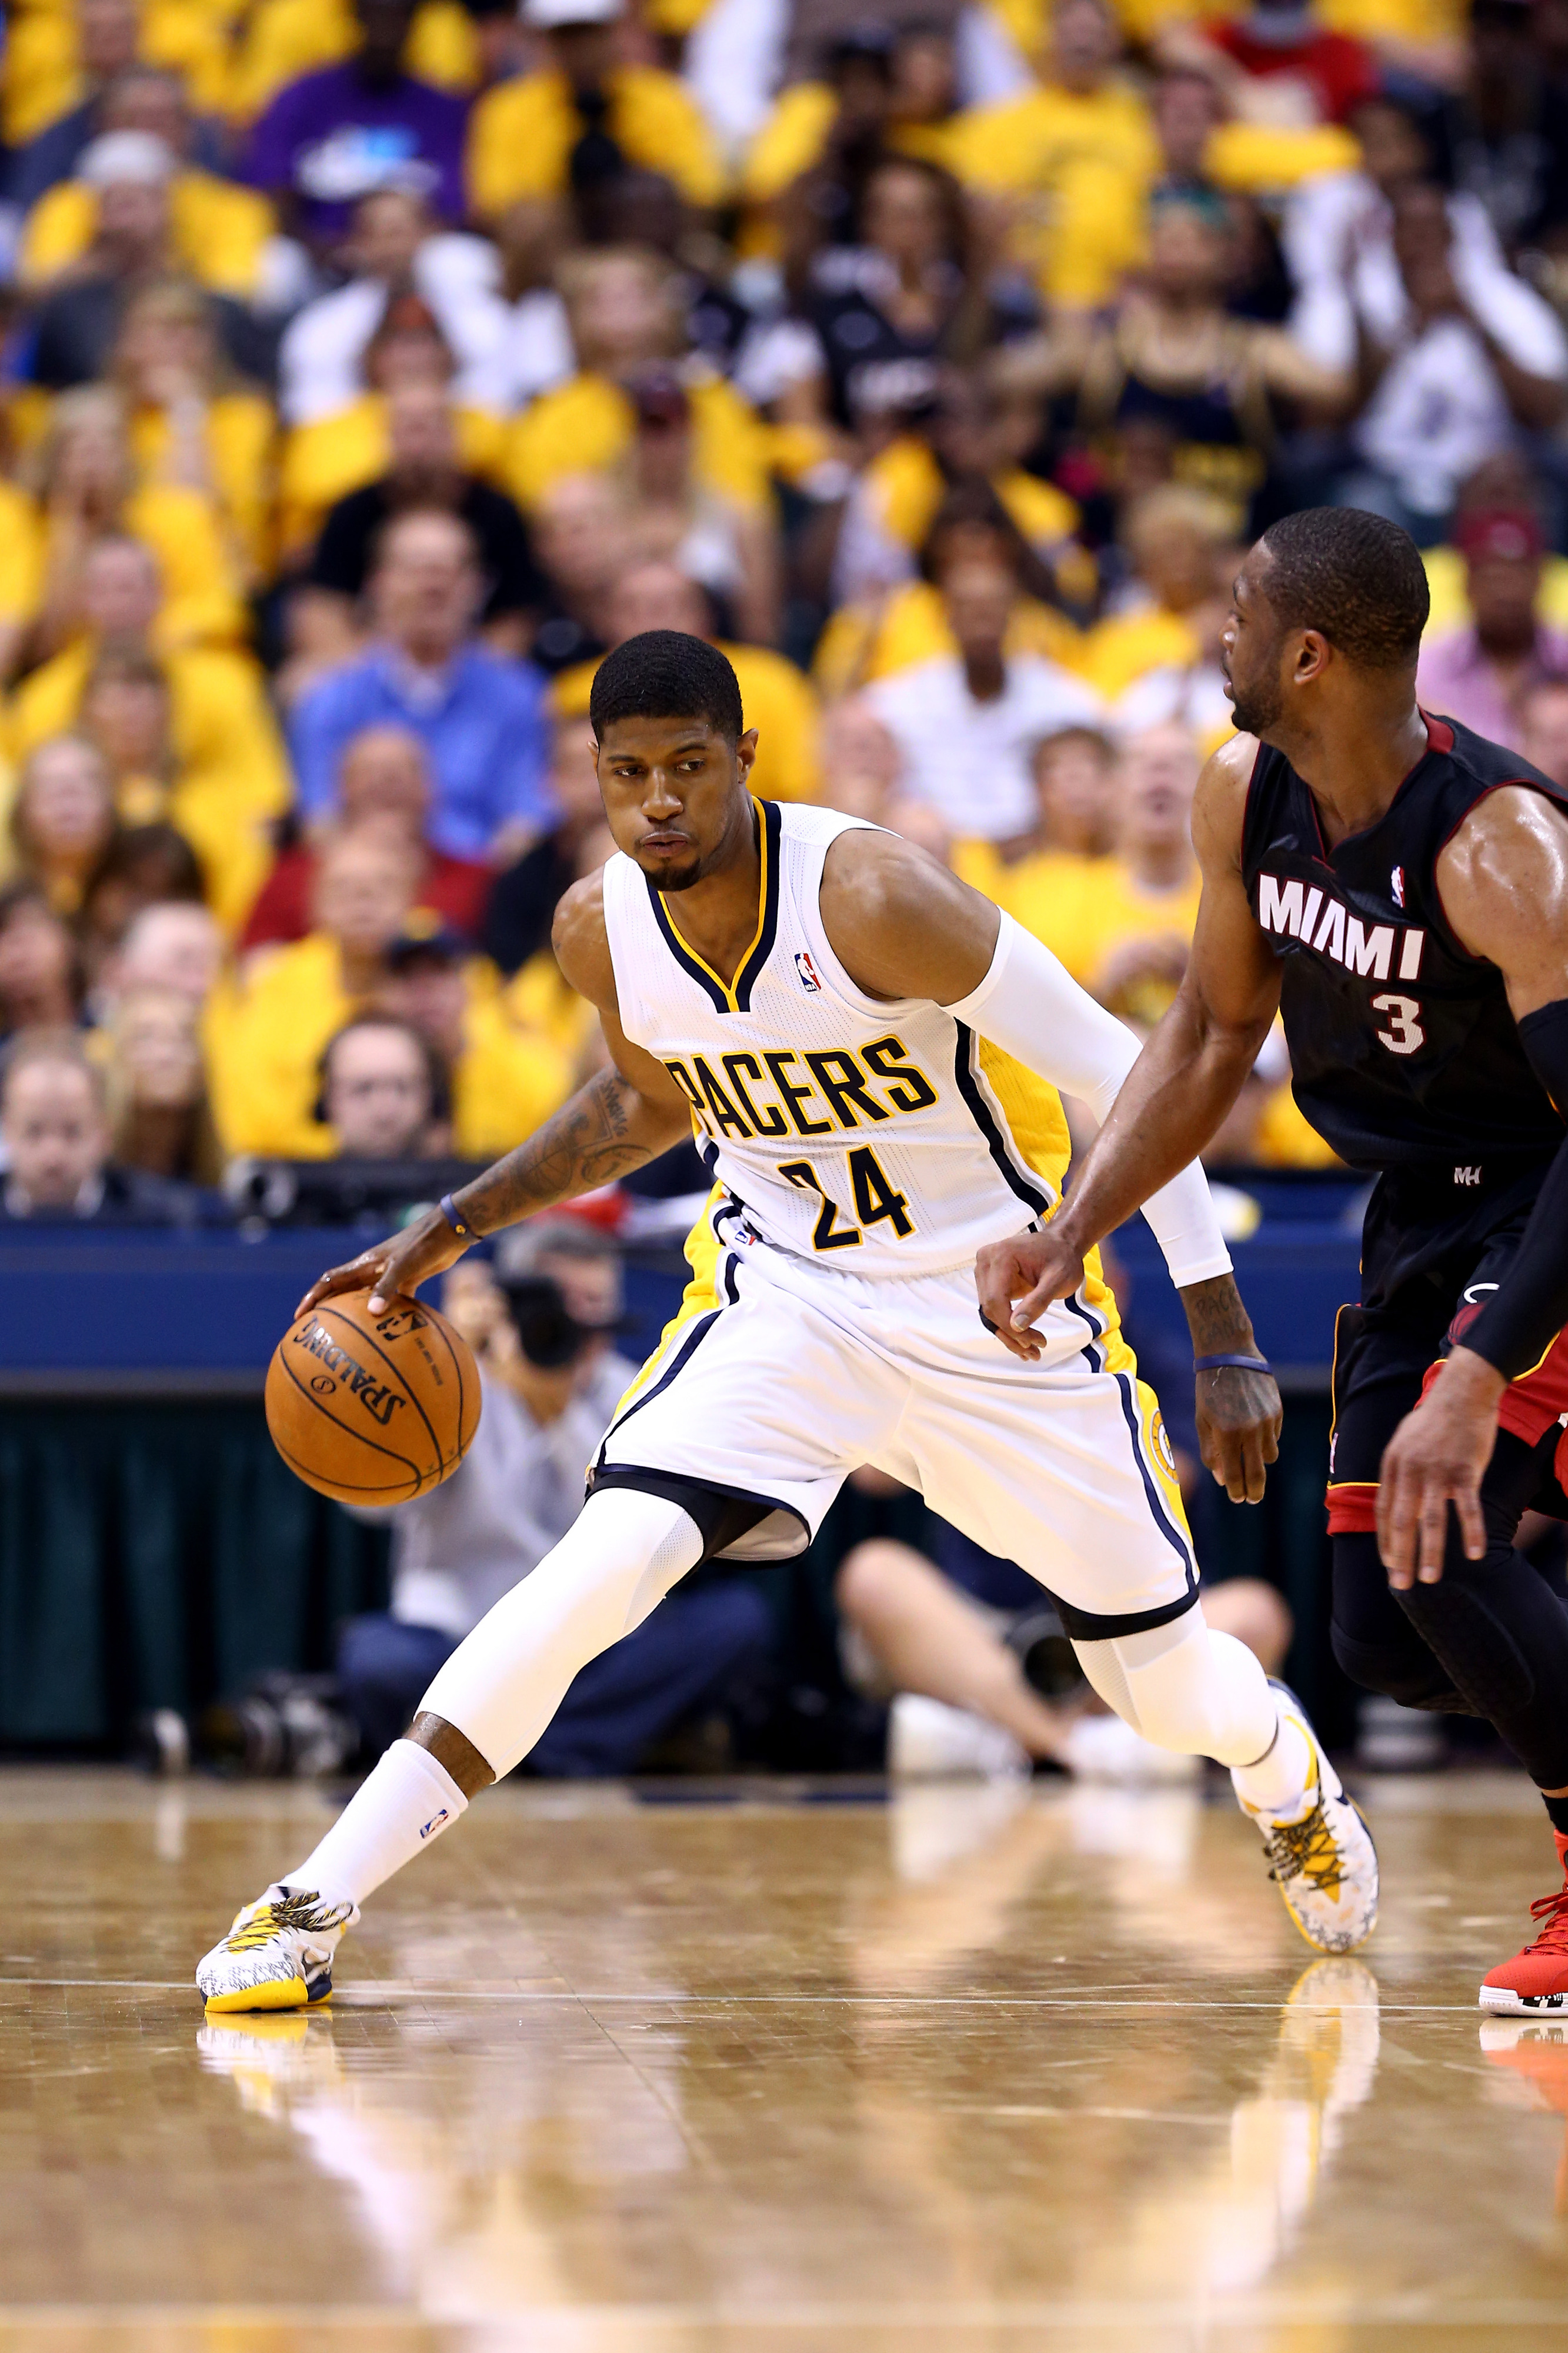 Heat vs. Pacers results, 2014 NBA playoffs: Paul George scores 21 in 4th to lead Indiana to 93-90 win